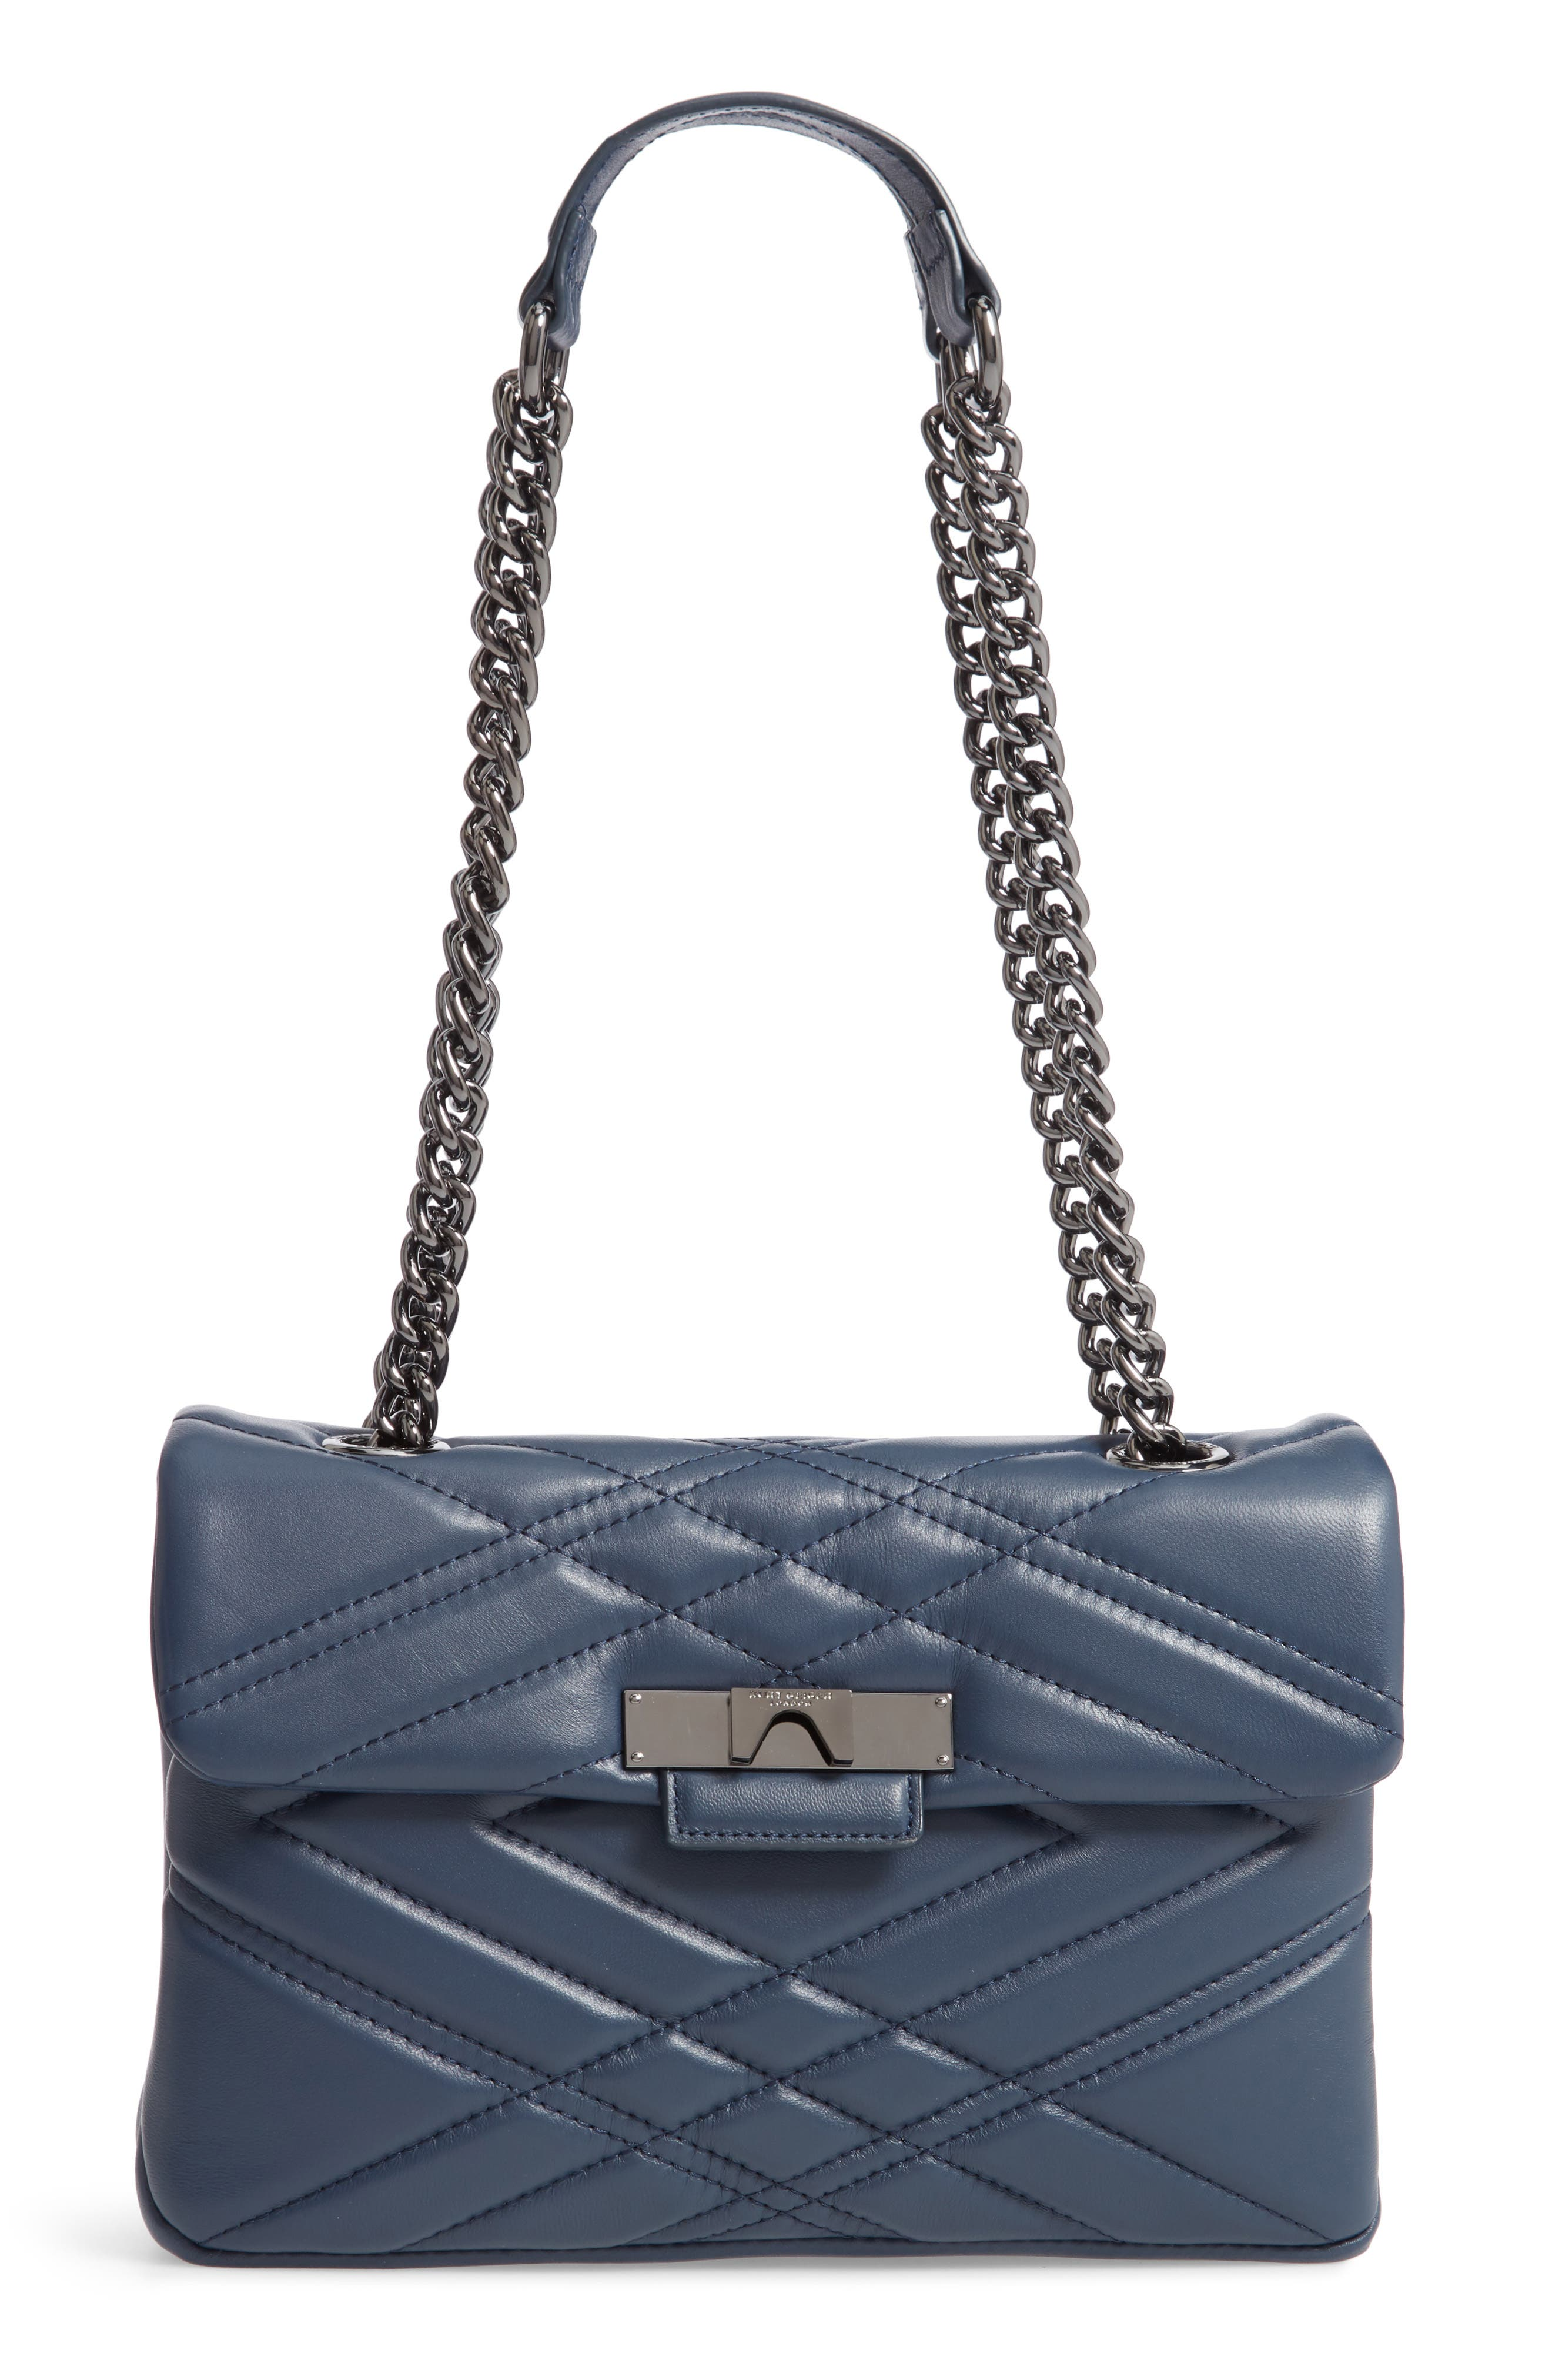 Mayfair Quilted Leather Shoulder Bag,                             Main thumbnail 1, color,                             BLUE/ DARK